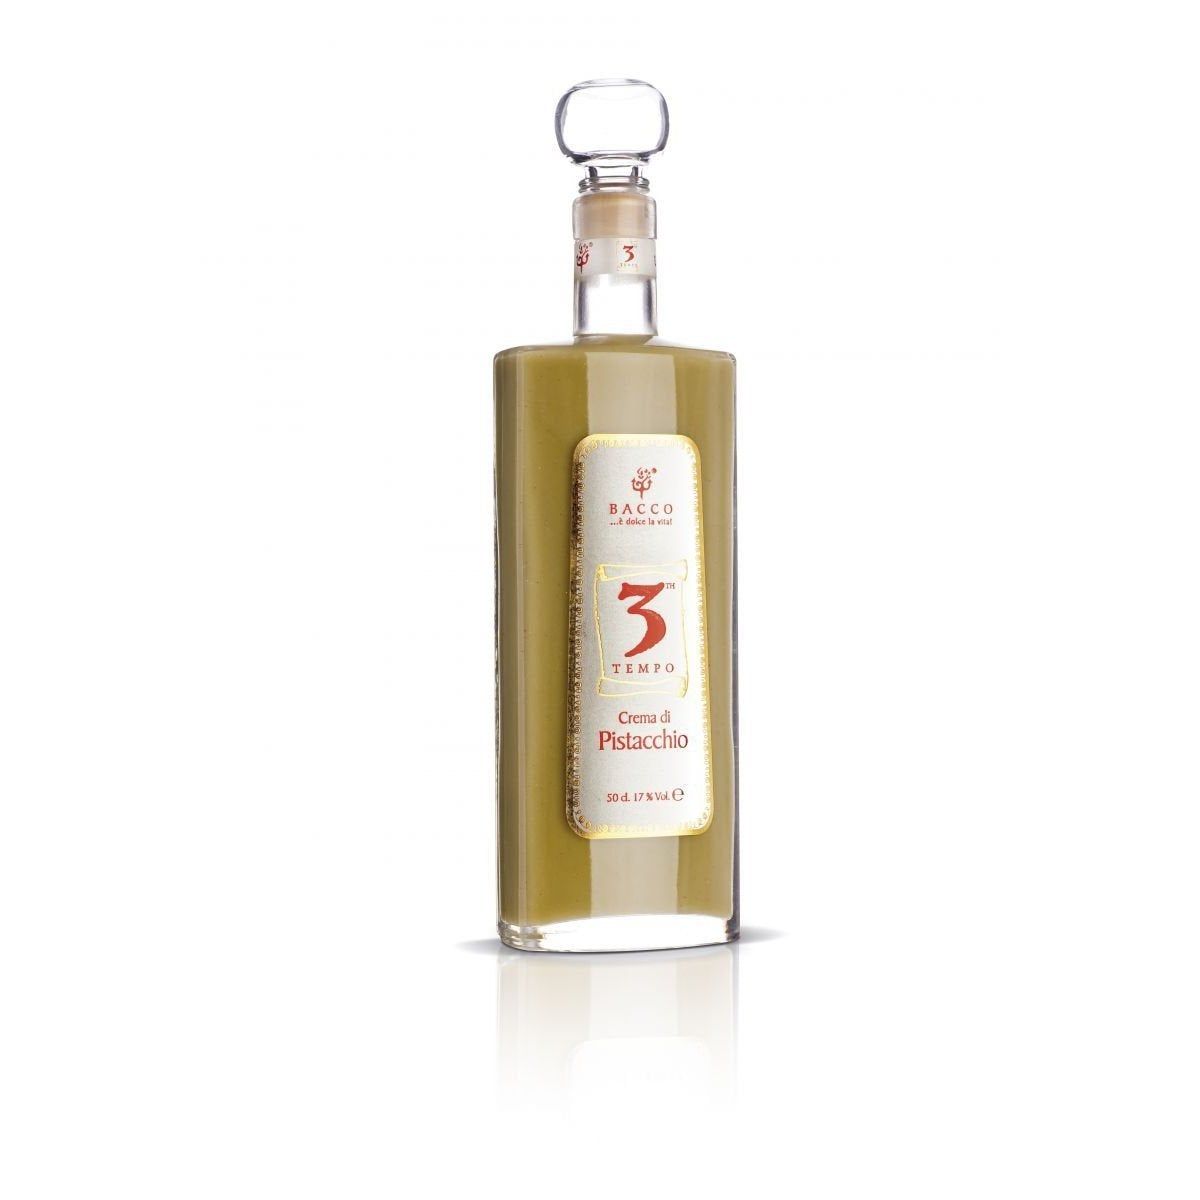 Liquore di pistacchio, 50 Cl - Food in Sicily